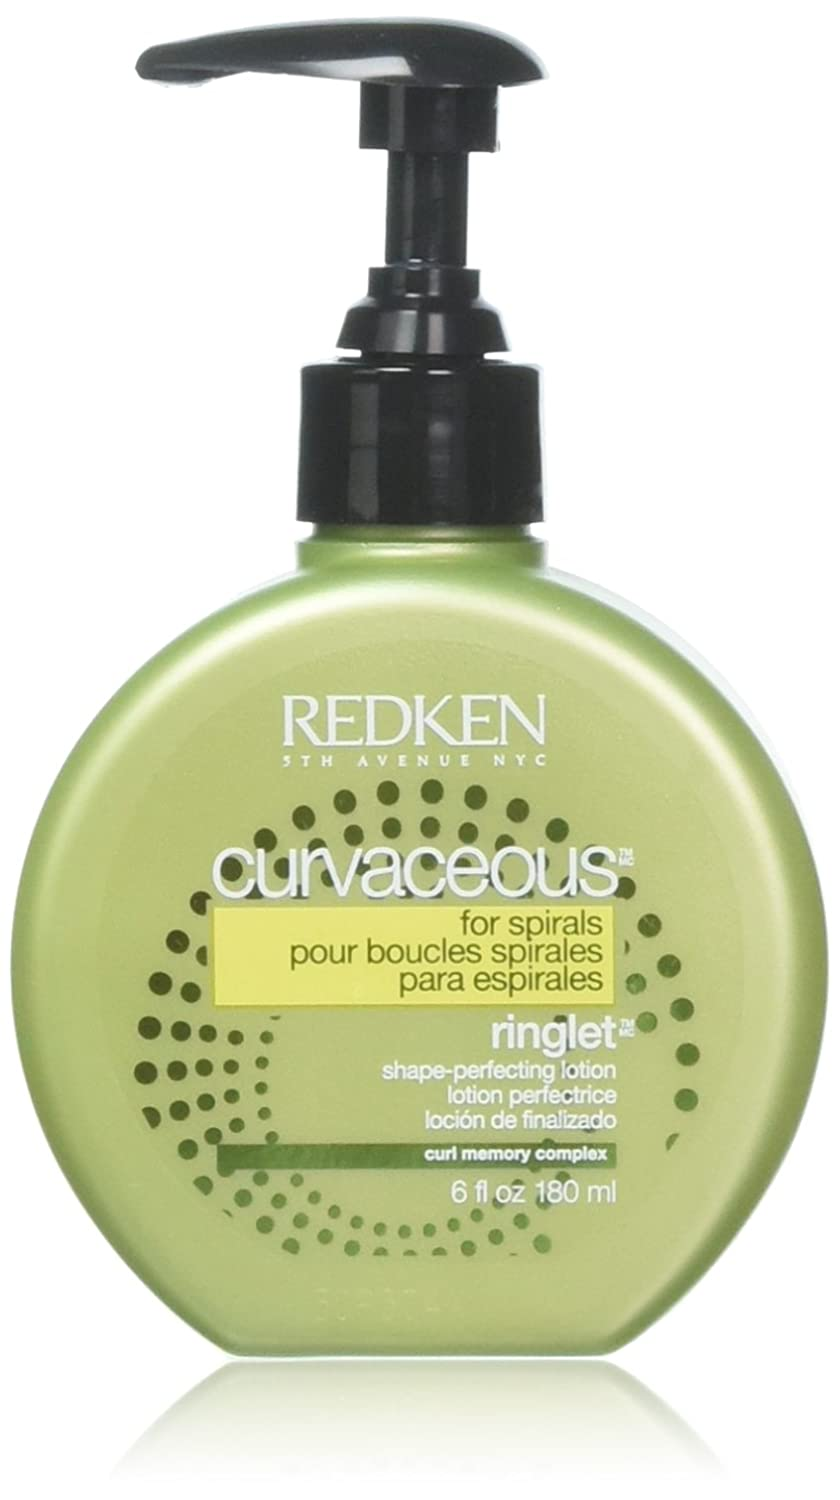 Redken Curvaceous Ringlet Anti-Frizz Perfecting Hair Treatment Lotion, 6 oz 0884486235411 47113